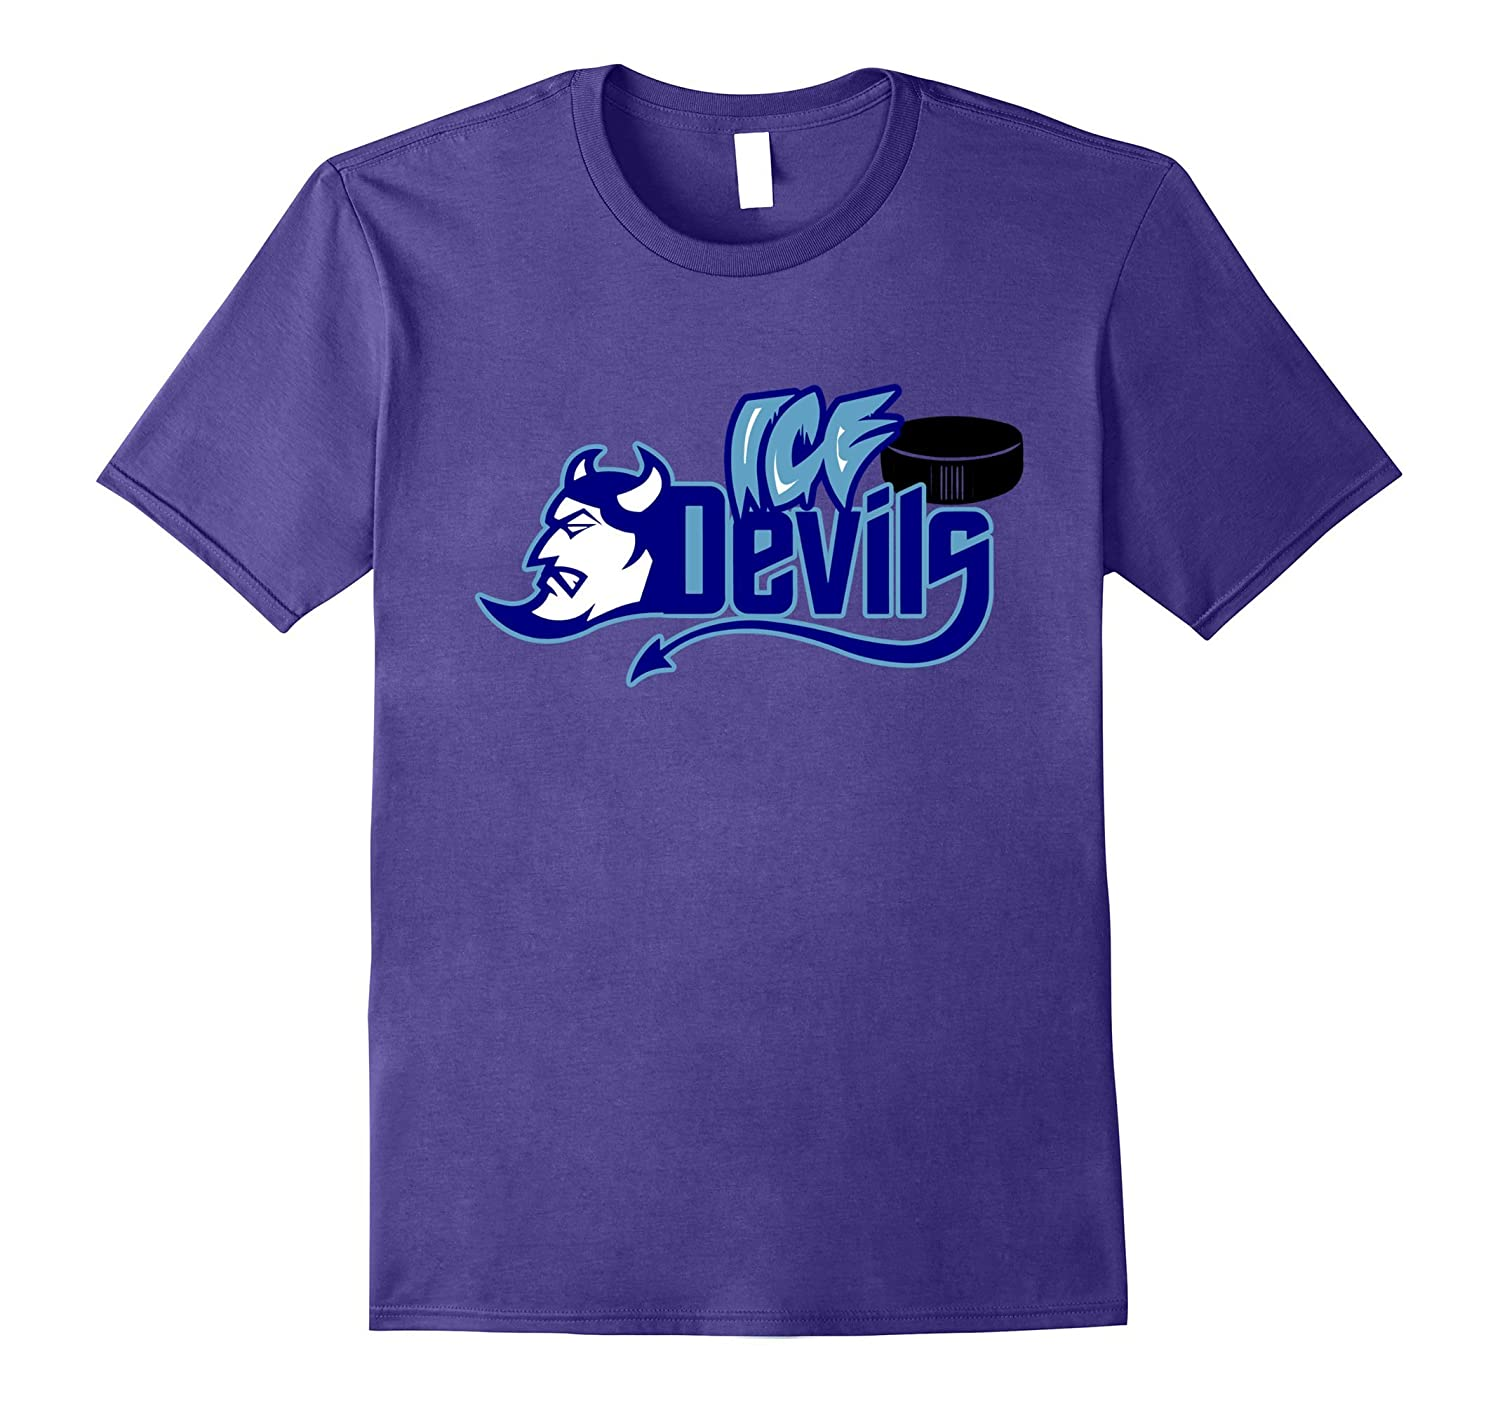 Ice Devils Joey Shirt-T-Shirt